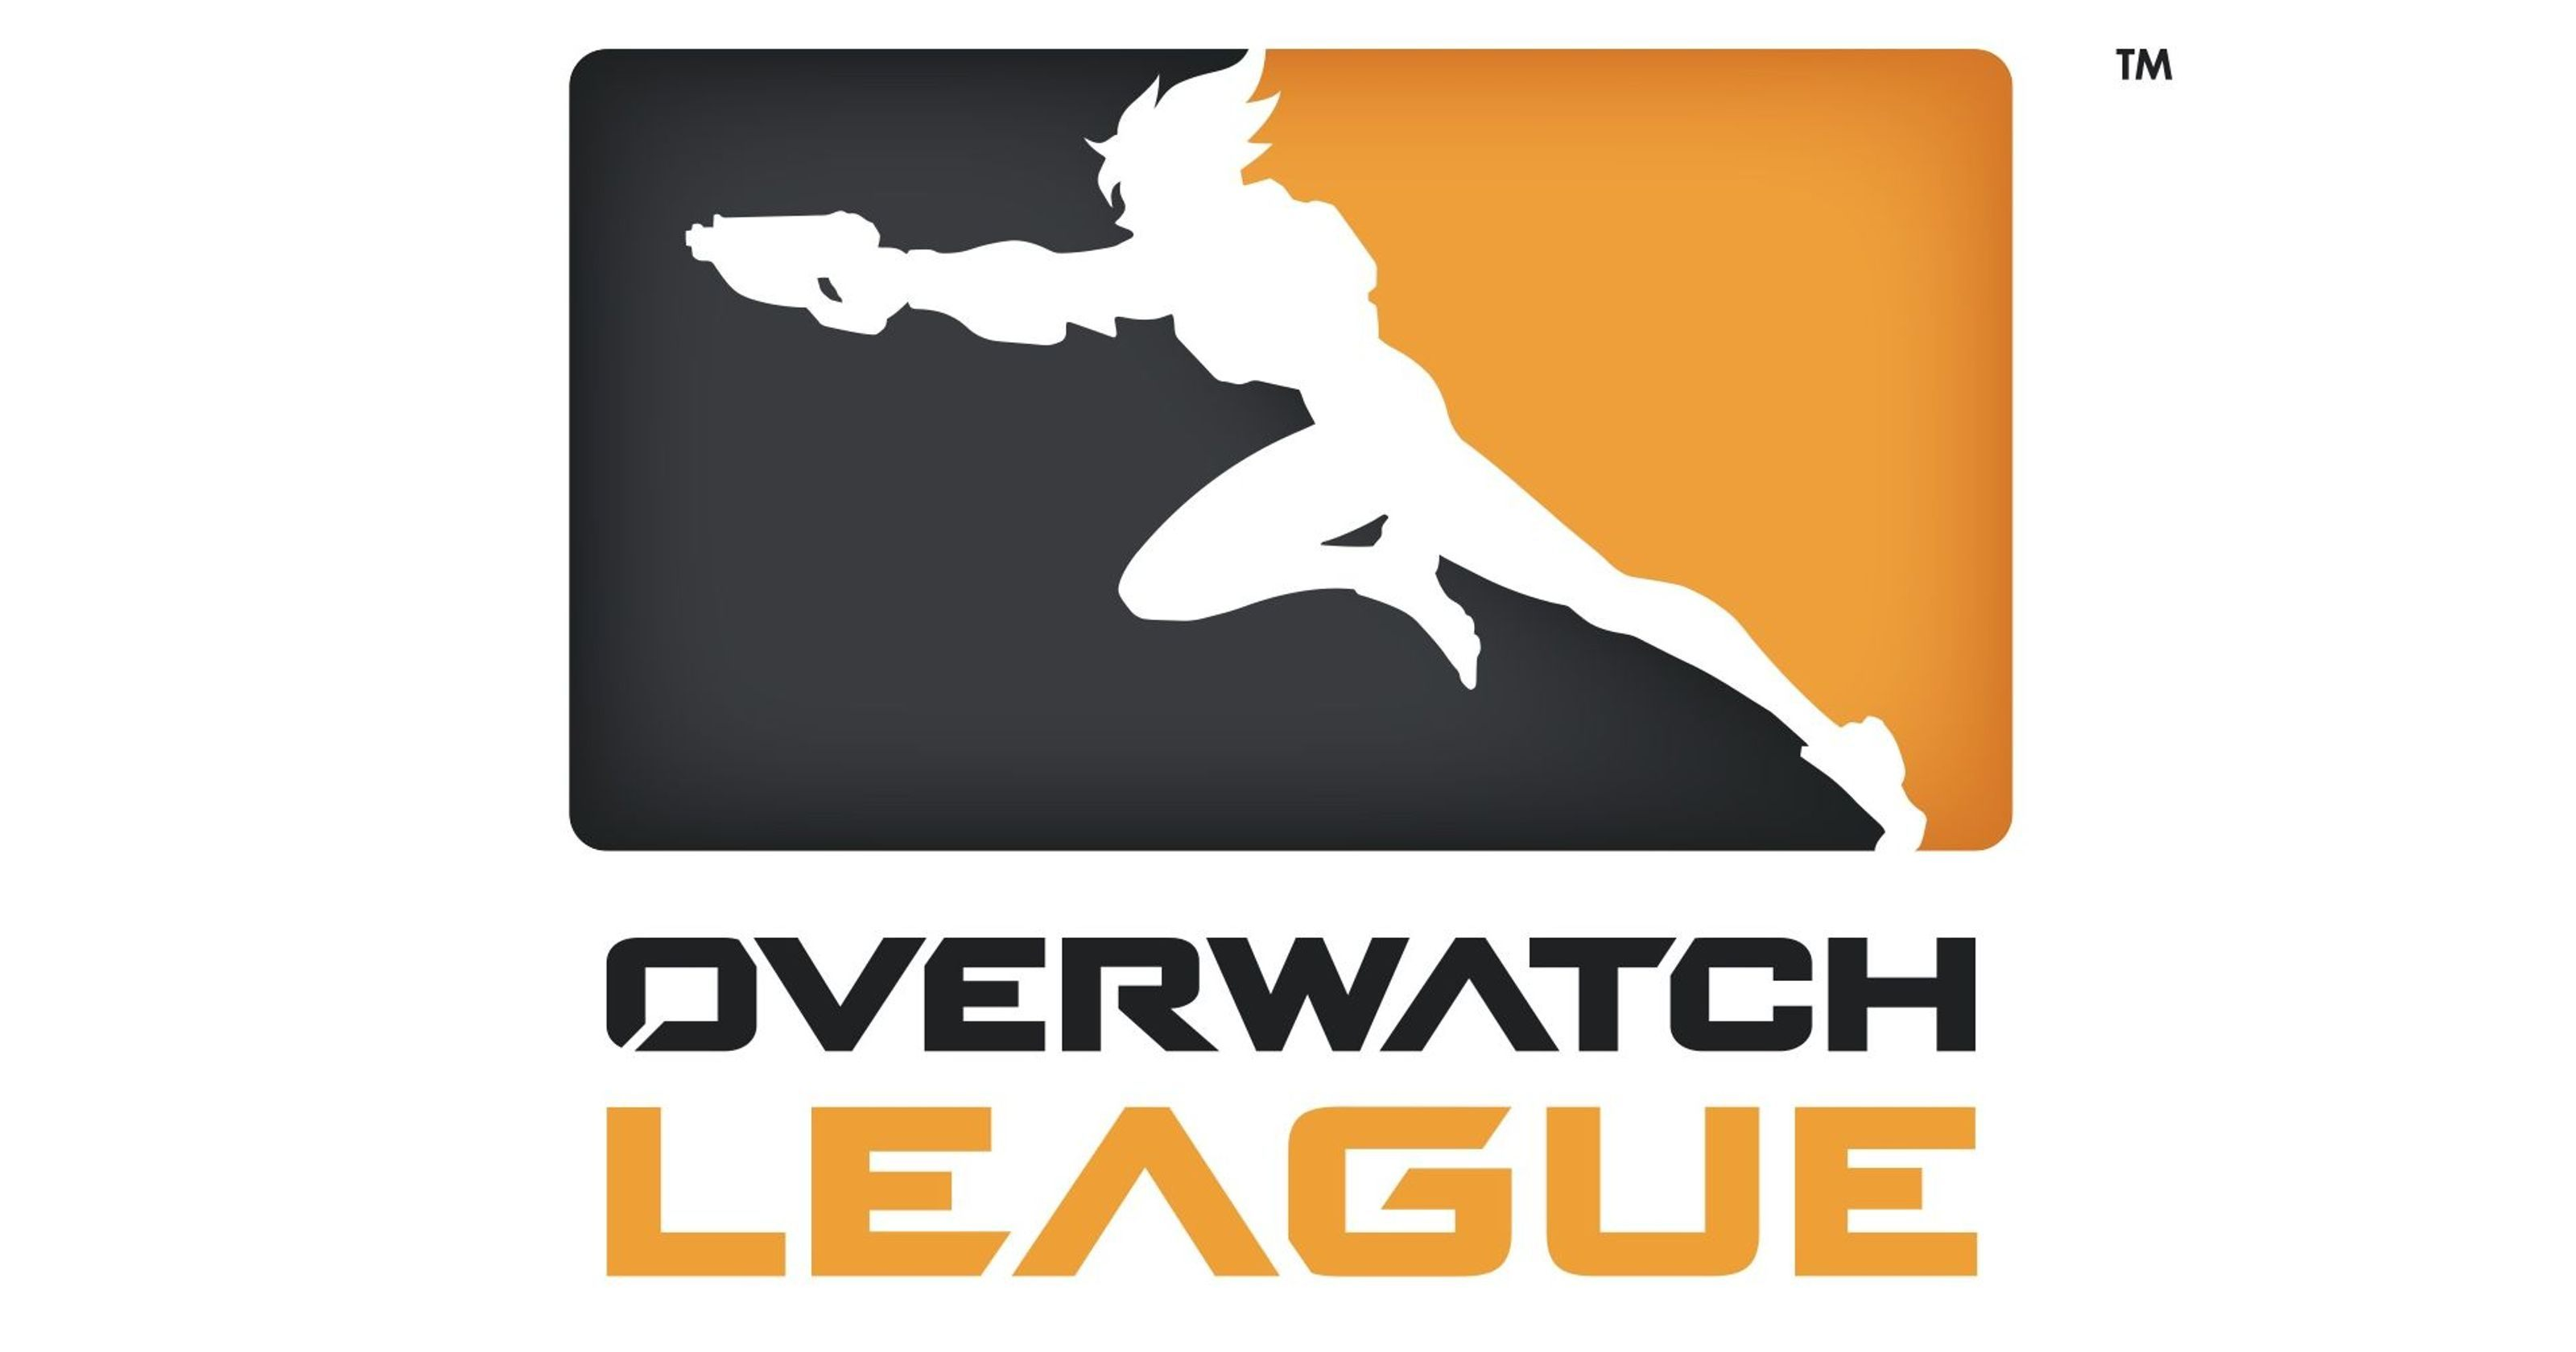 overwatch league ellie player professional pro woman second wind